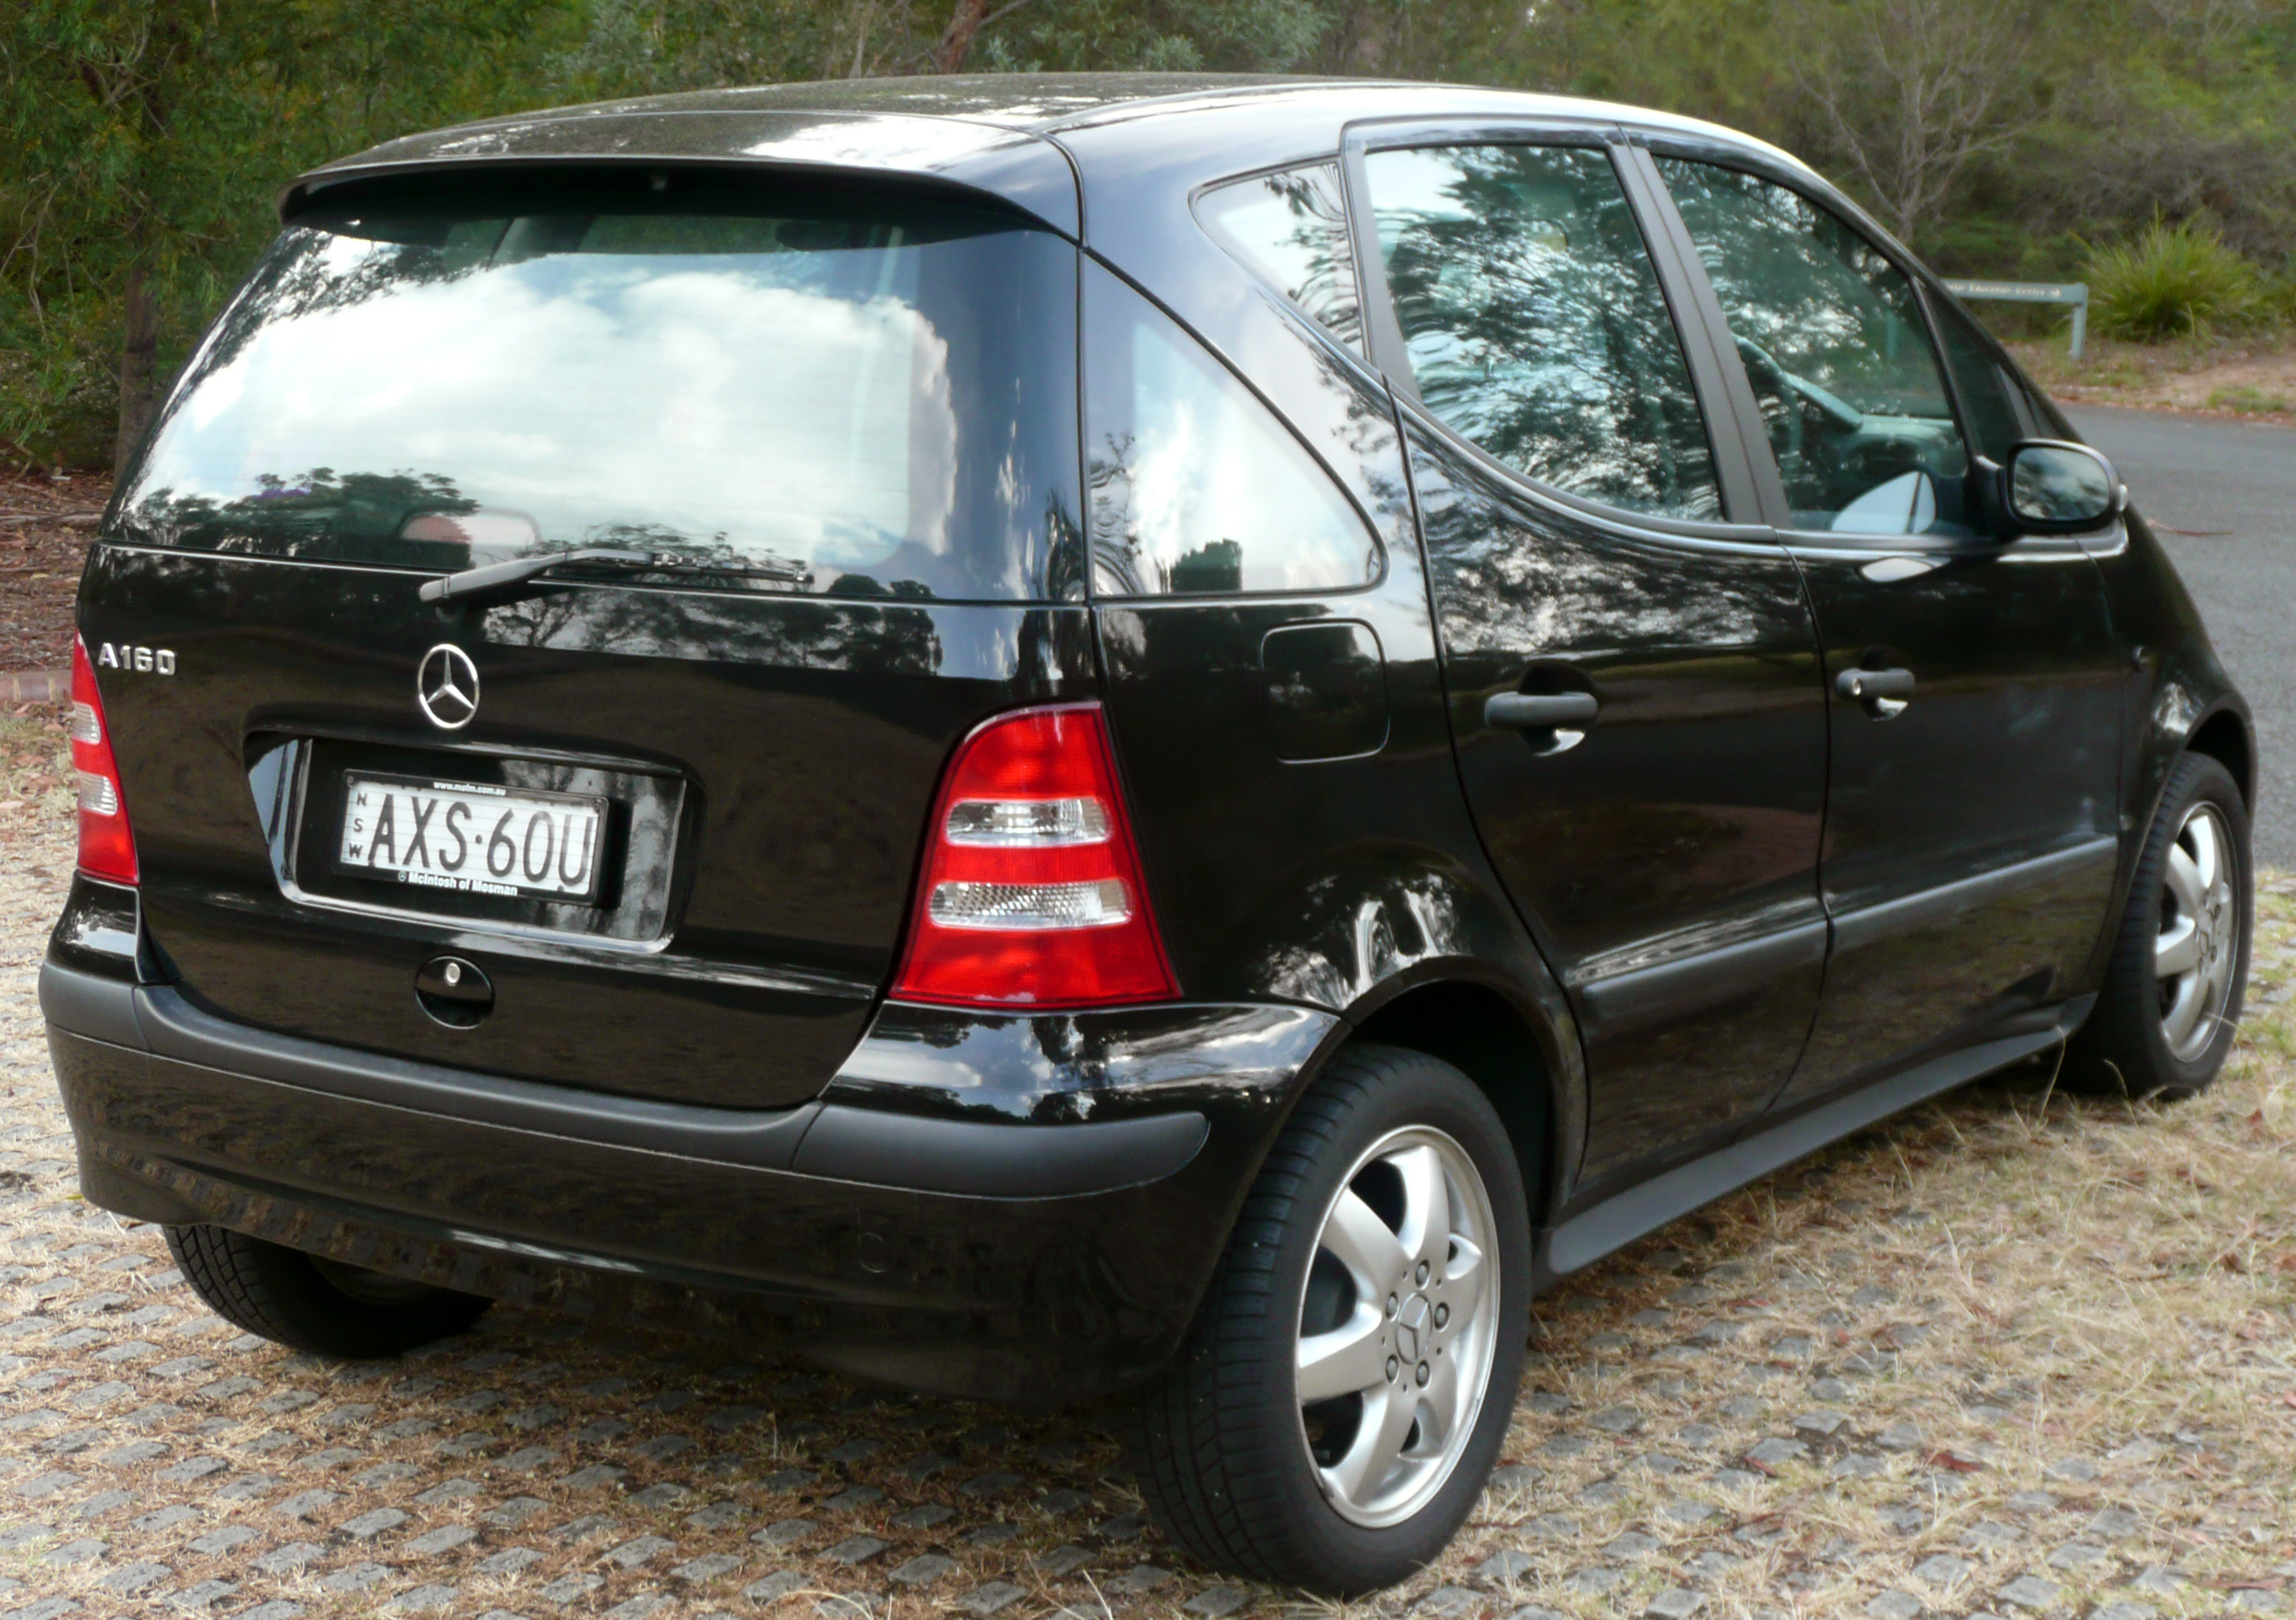 Mercedes A160 Mercedes Benz A160 Picture 9 Reviews News Specs Buy Car